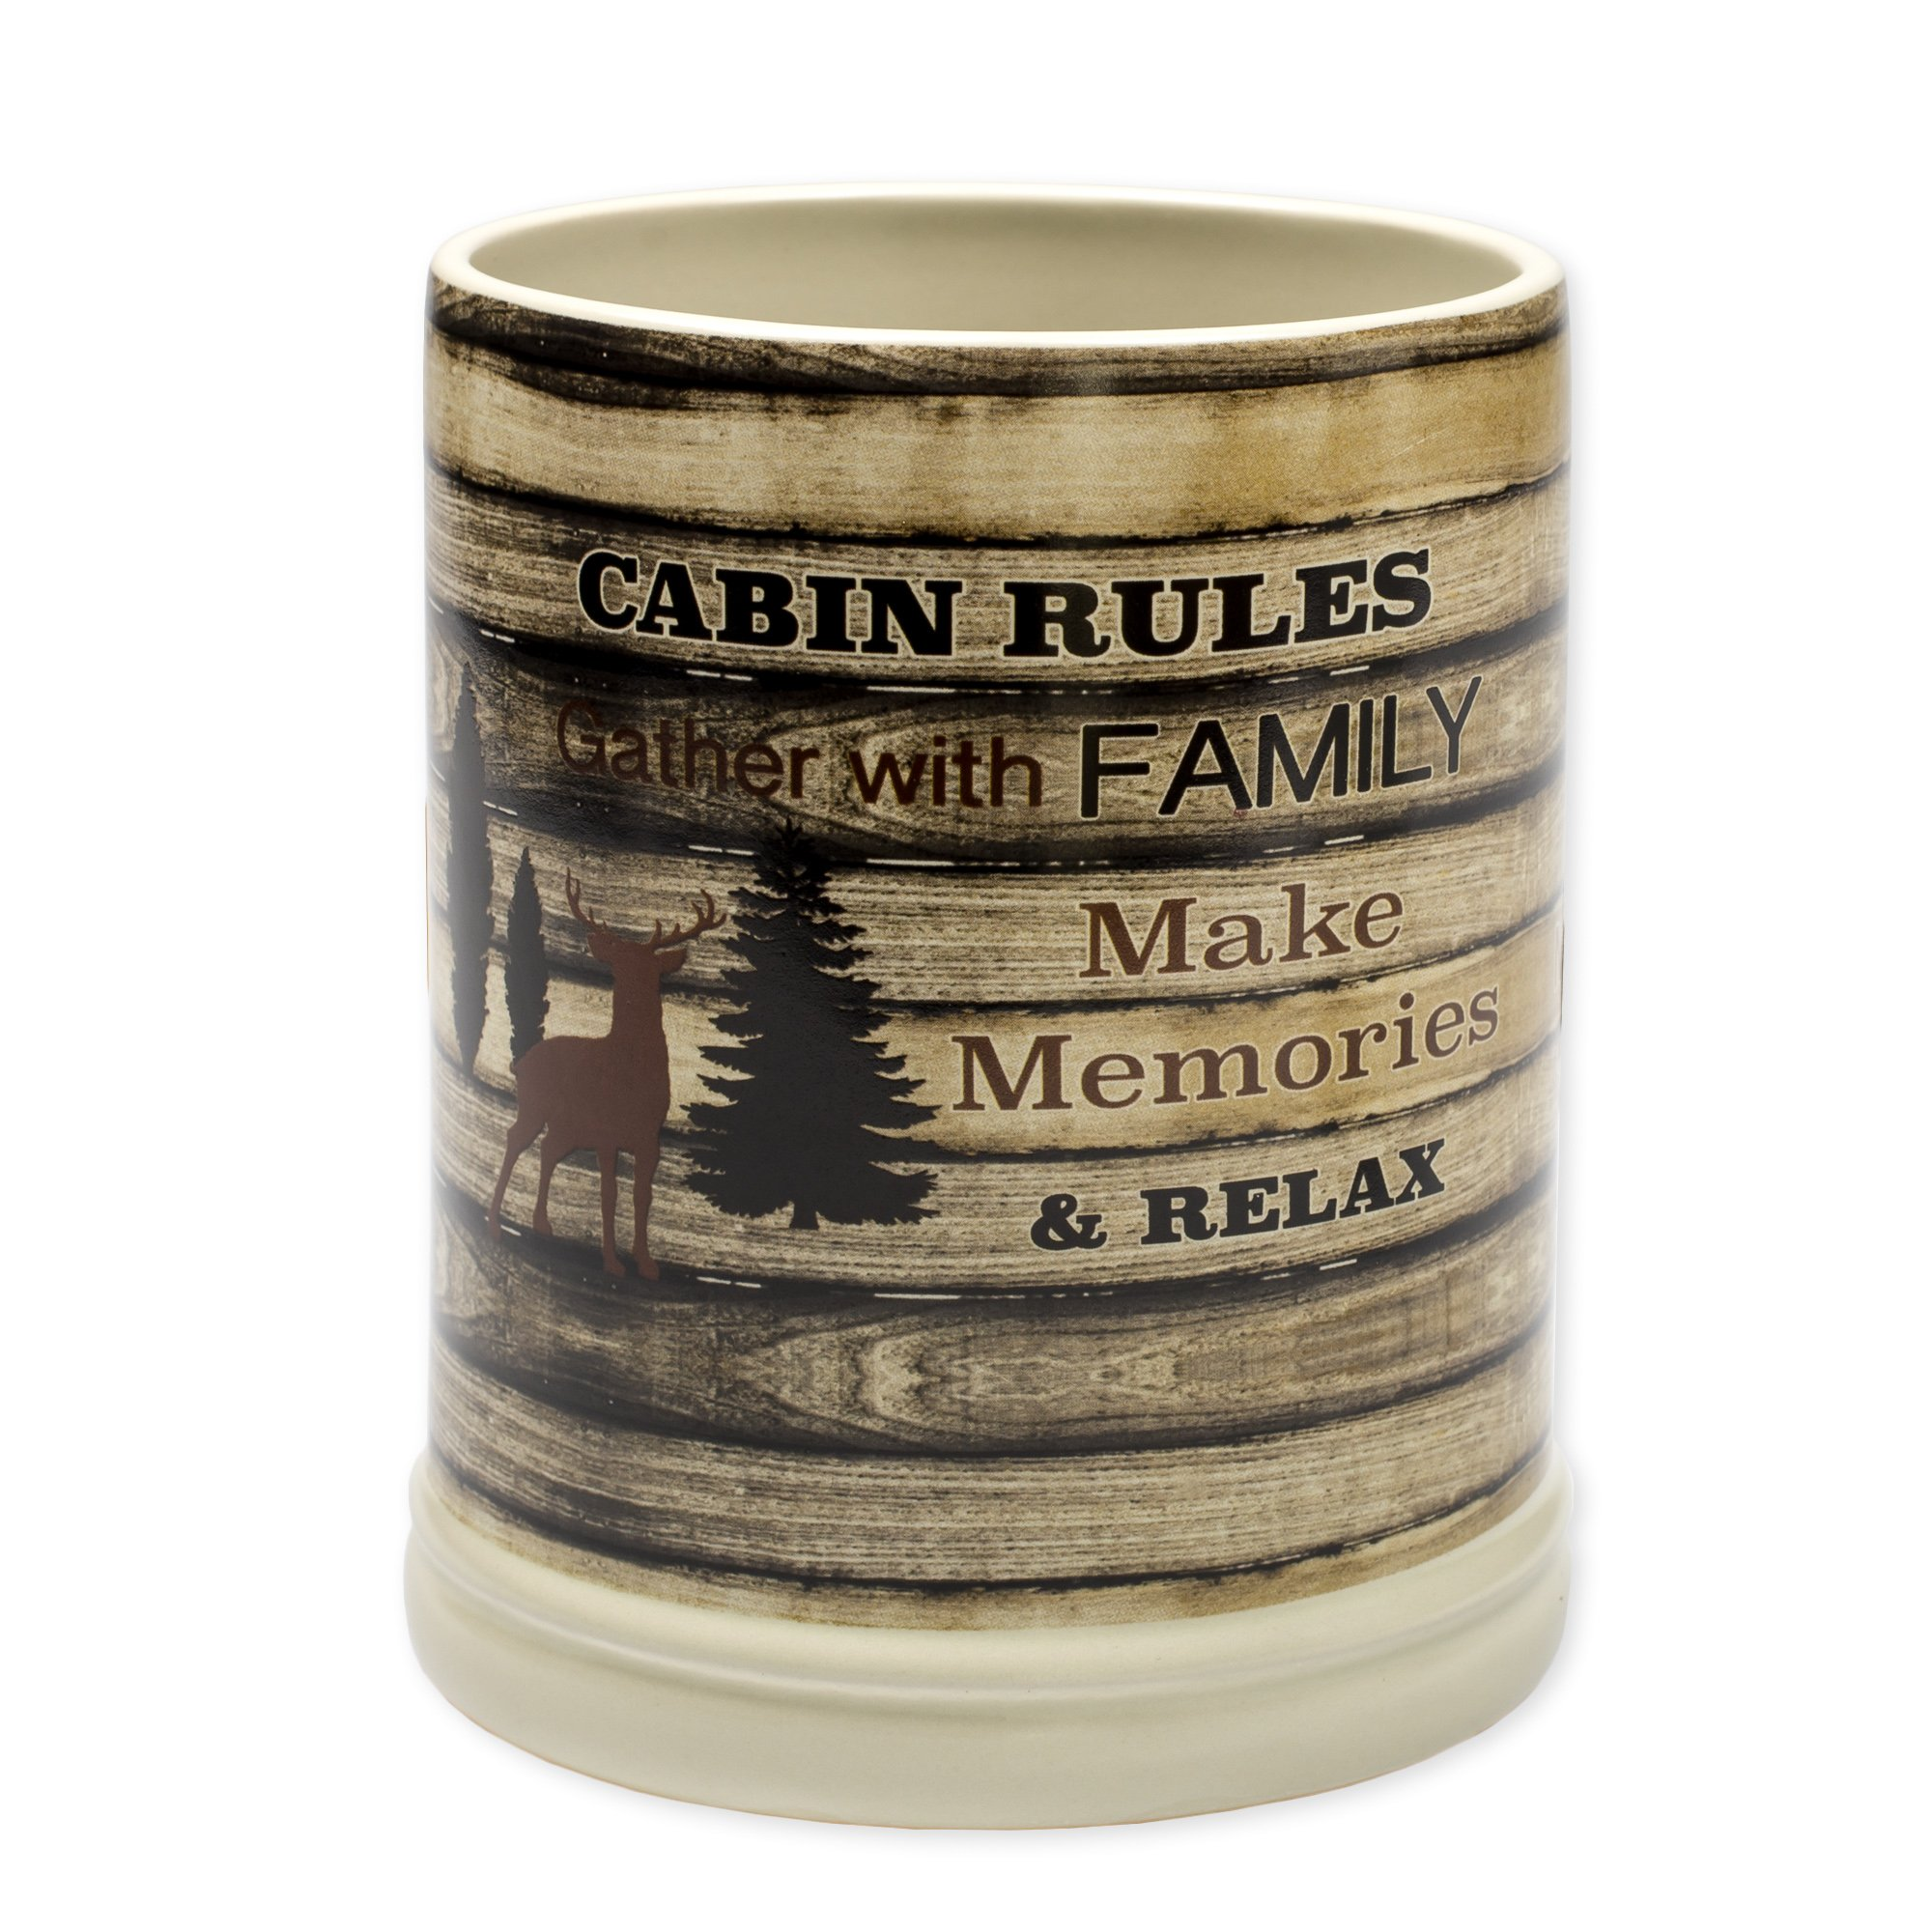 Cabin Rules Rustic Wood Outdoor Design Ceramic Stone Jar Warmer